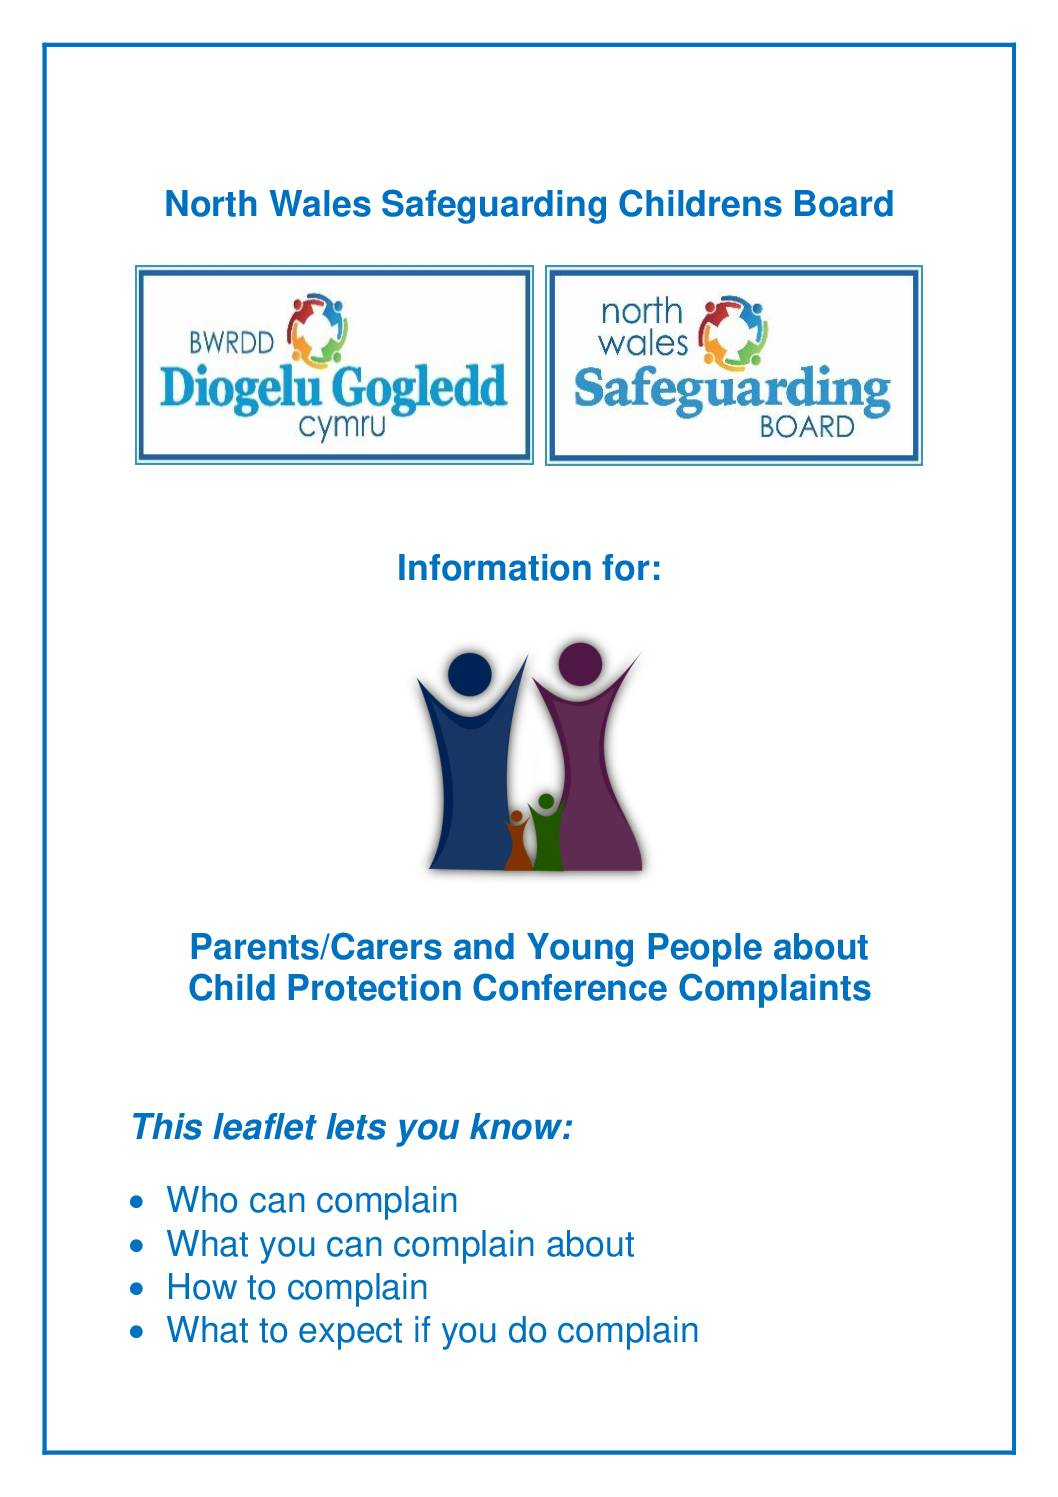 Information in relation to Child Protection Conference Complaints